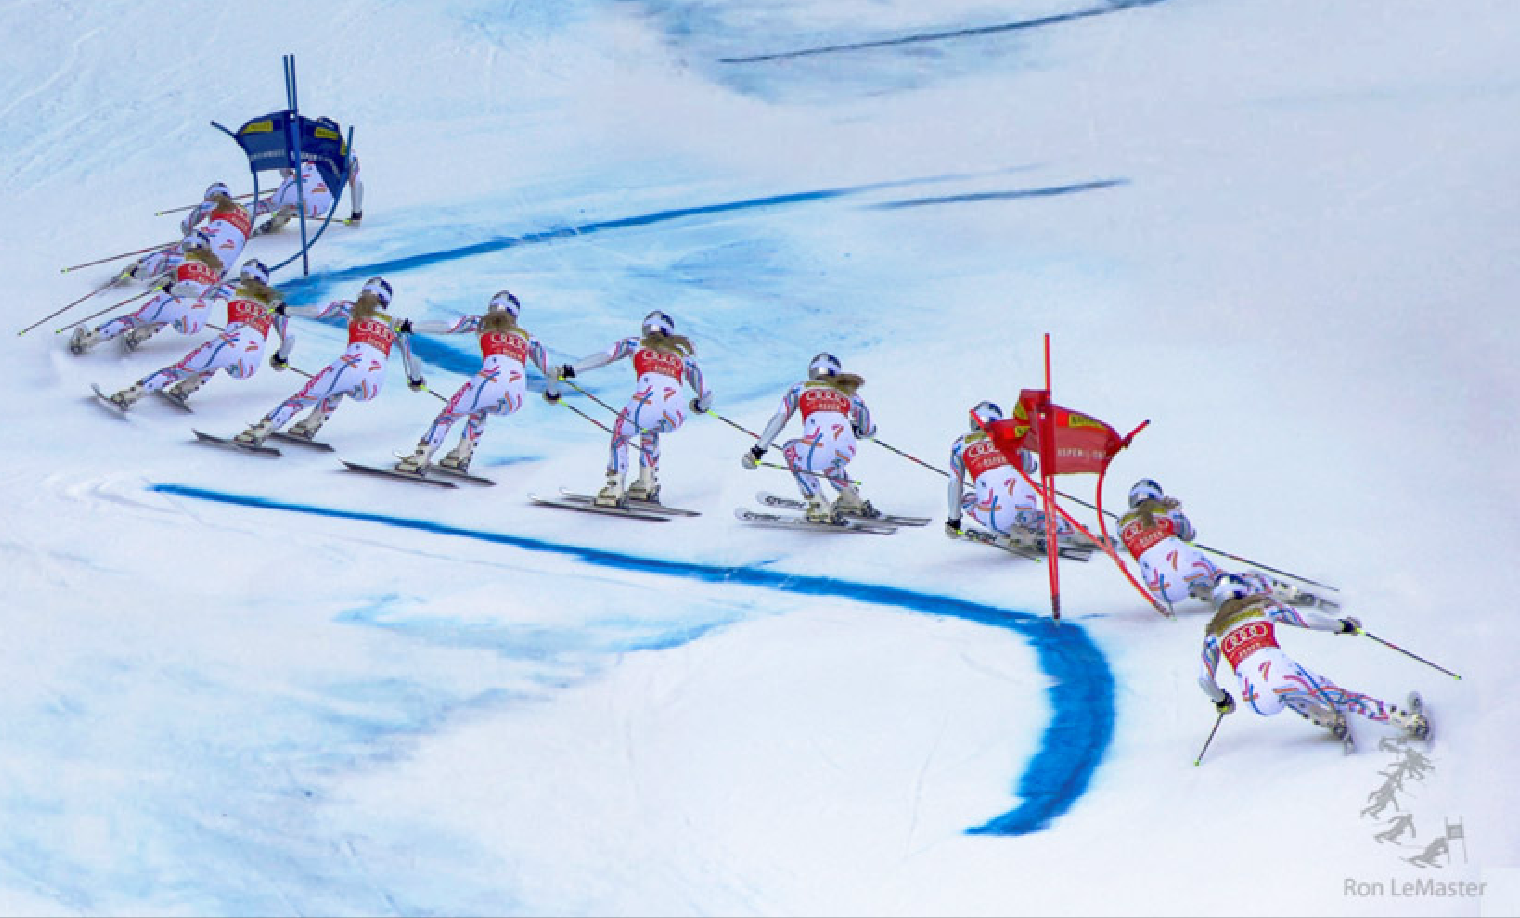 Lindsey Vonn at an Aspen GS race, 2011, photo: Ron Le Master